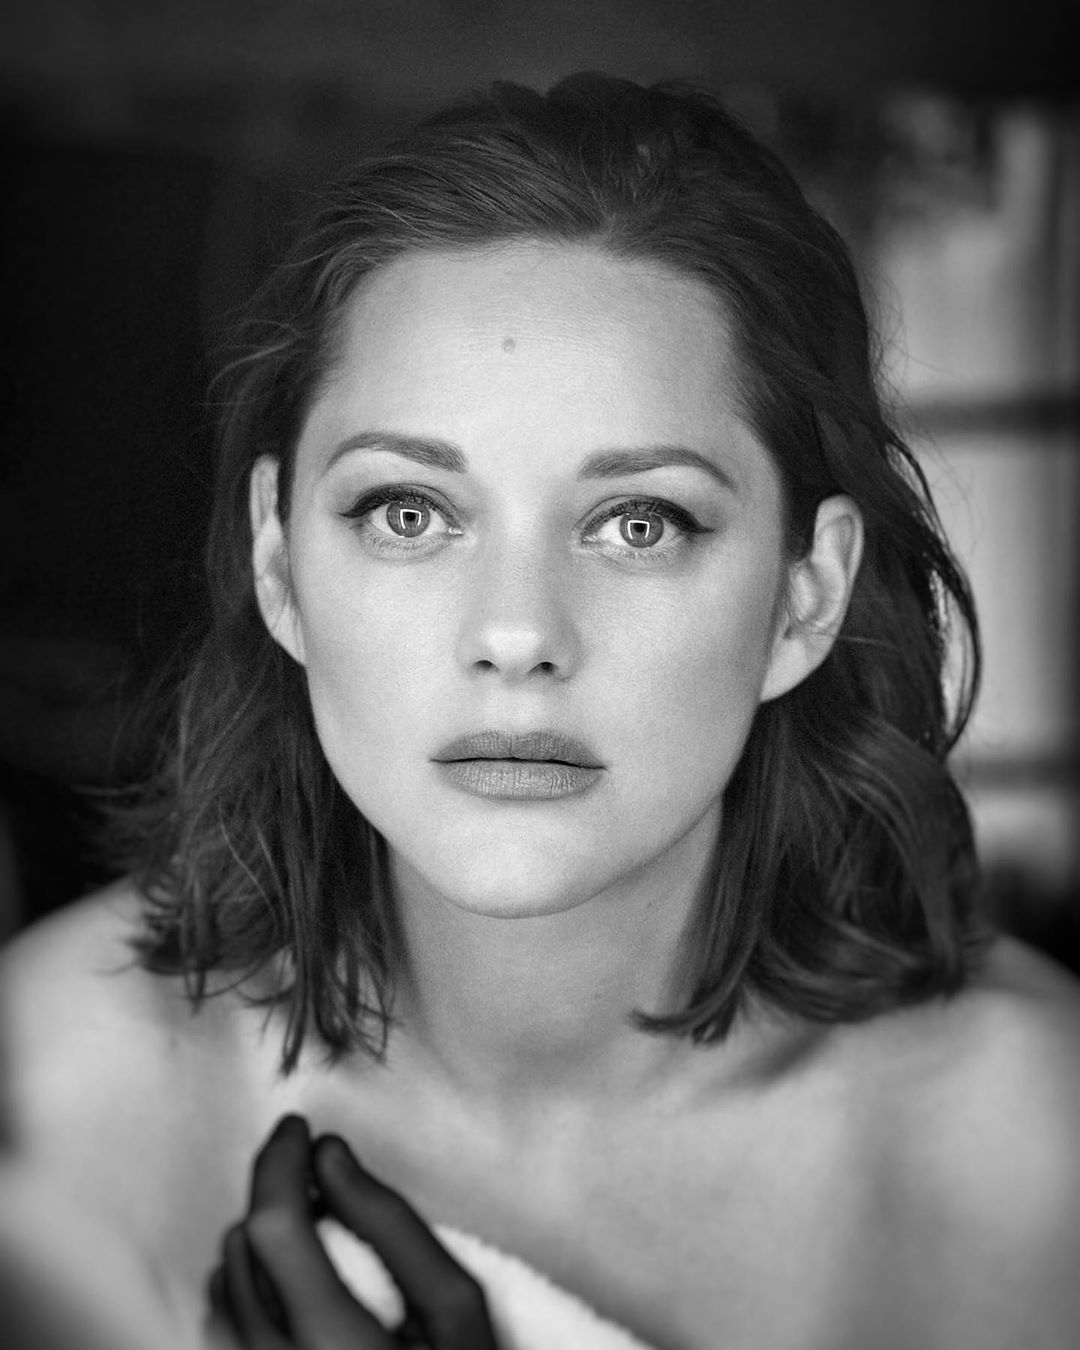 Chris M On Instagram Marion Cotillard Born 30 September 1975 Is A French Actress Original Port French Actress Marion Cotillard Marion Cottilard